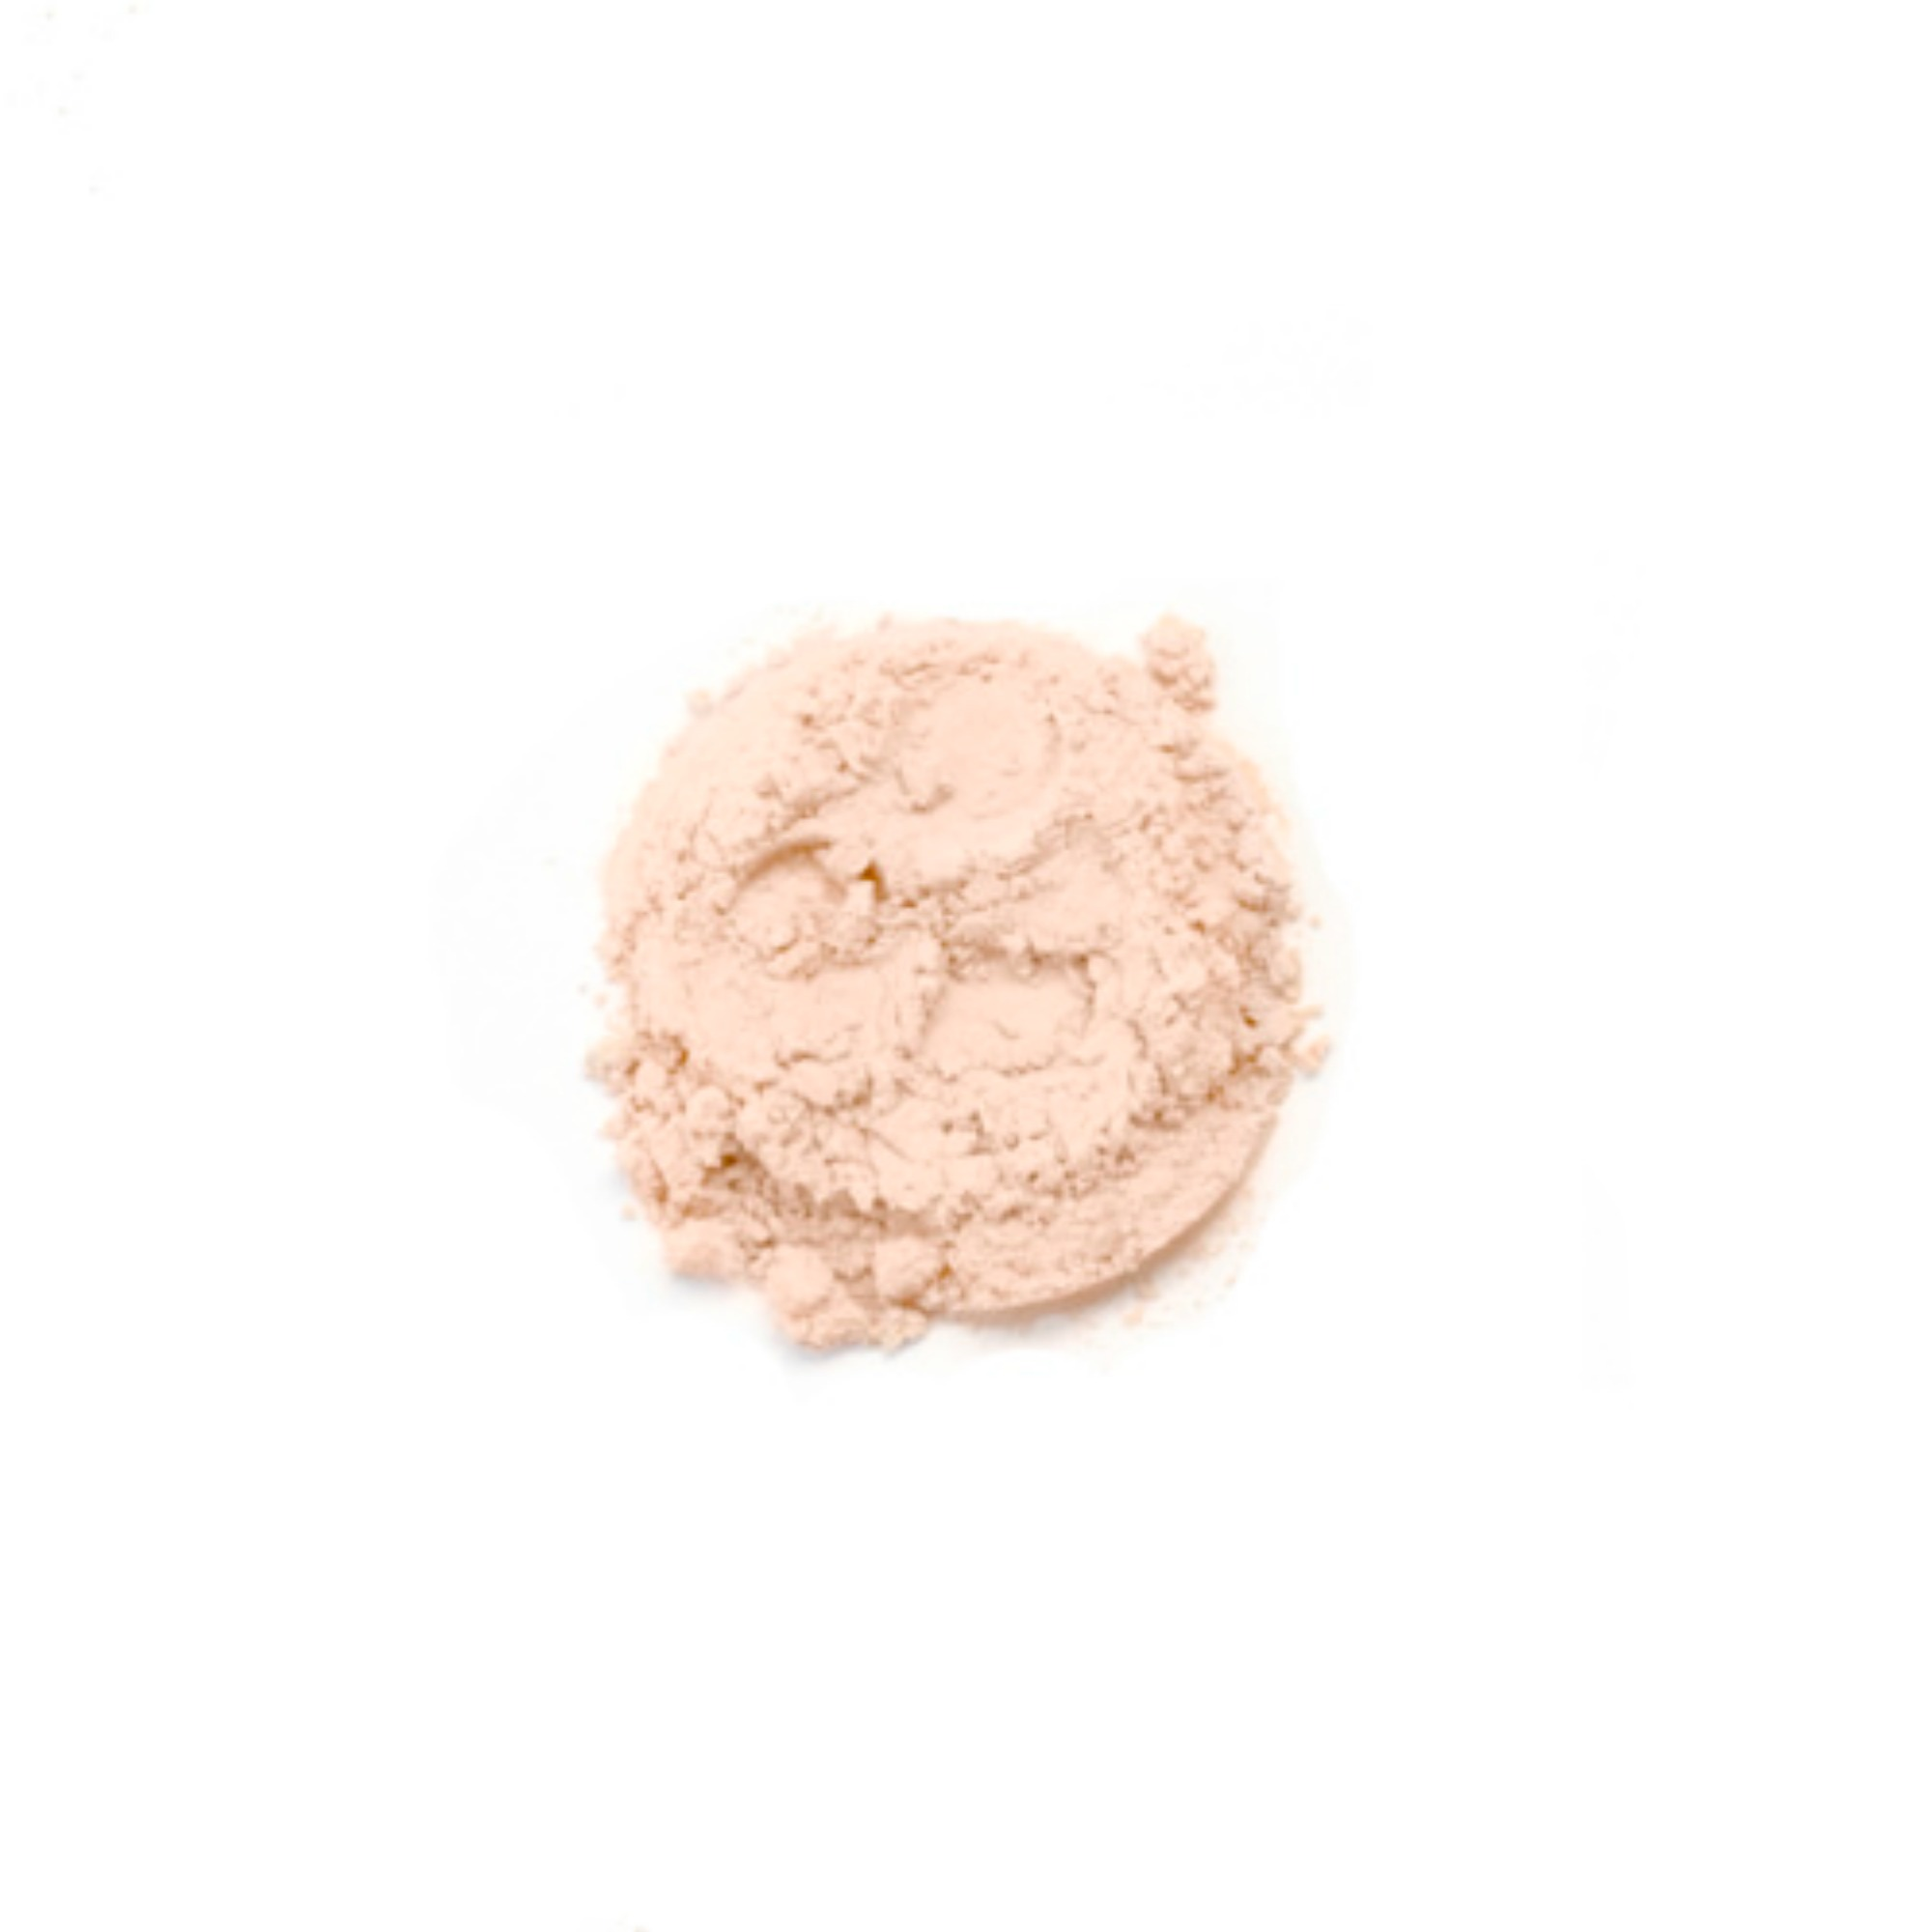 COOL 1 FOUNDATION    Cool shades are best for people with pink undertones, or who burn easily in the sun. Cool 1 is the lightest of the three cool shades. Young Living's Savvy Minerals foundation minimizes pore appearance, brightens complexion, absorbs excess oils, enhances natural beauty, is long-lasting, ideal for sensitive skin, is a vegan-friendly formula, and is not tested on animals. It's also formulated without talc, bismuth, parabens, phthalates, petrochemicals, synthetic fragrances, or synthetic colorants.   Click here   to learn more about this product.